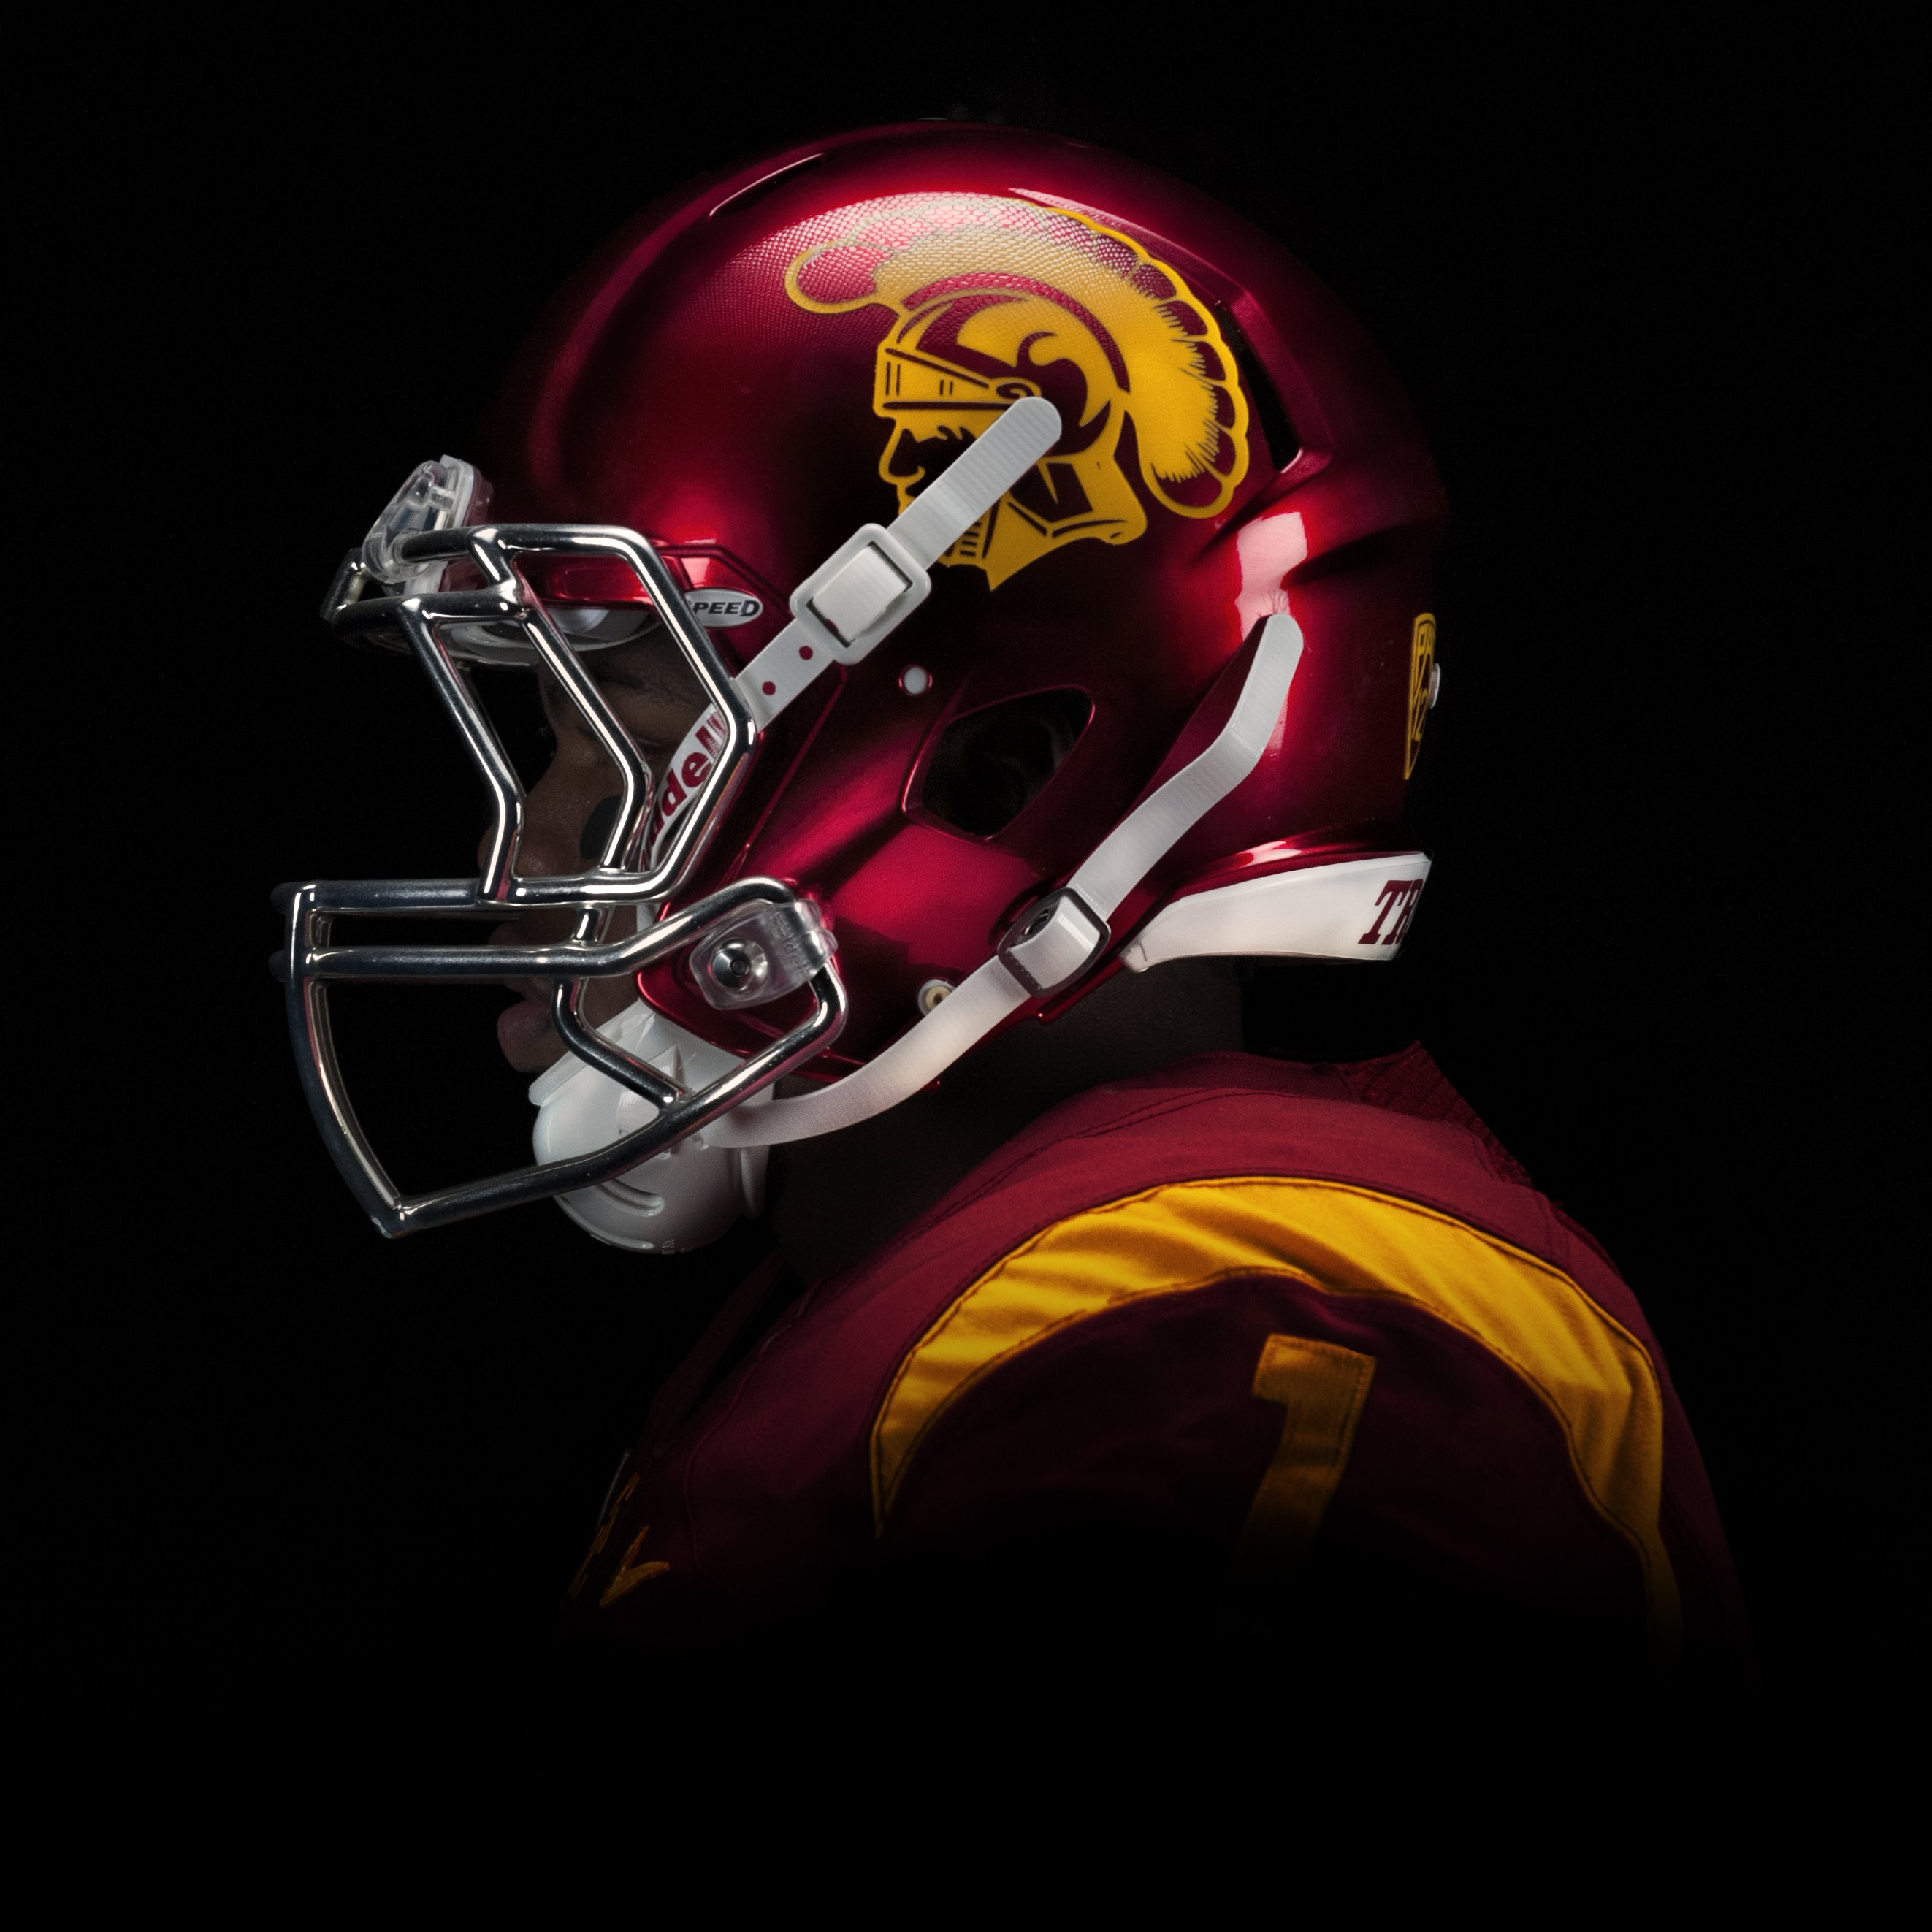 USC TROJANS college football wallpaper 2645x2645 592781 2645x2645